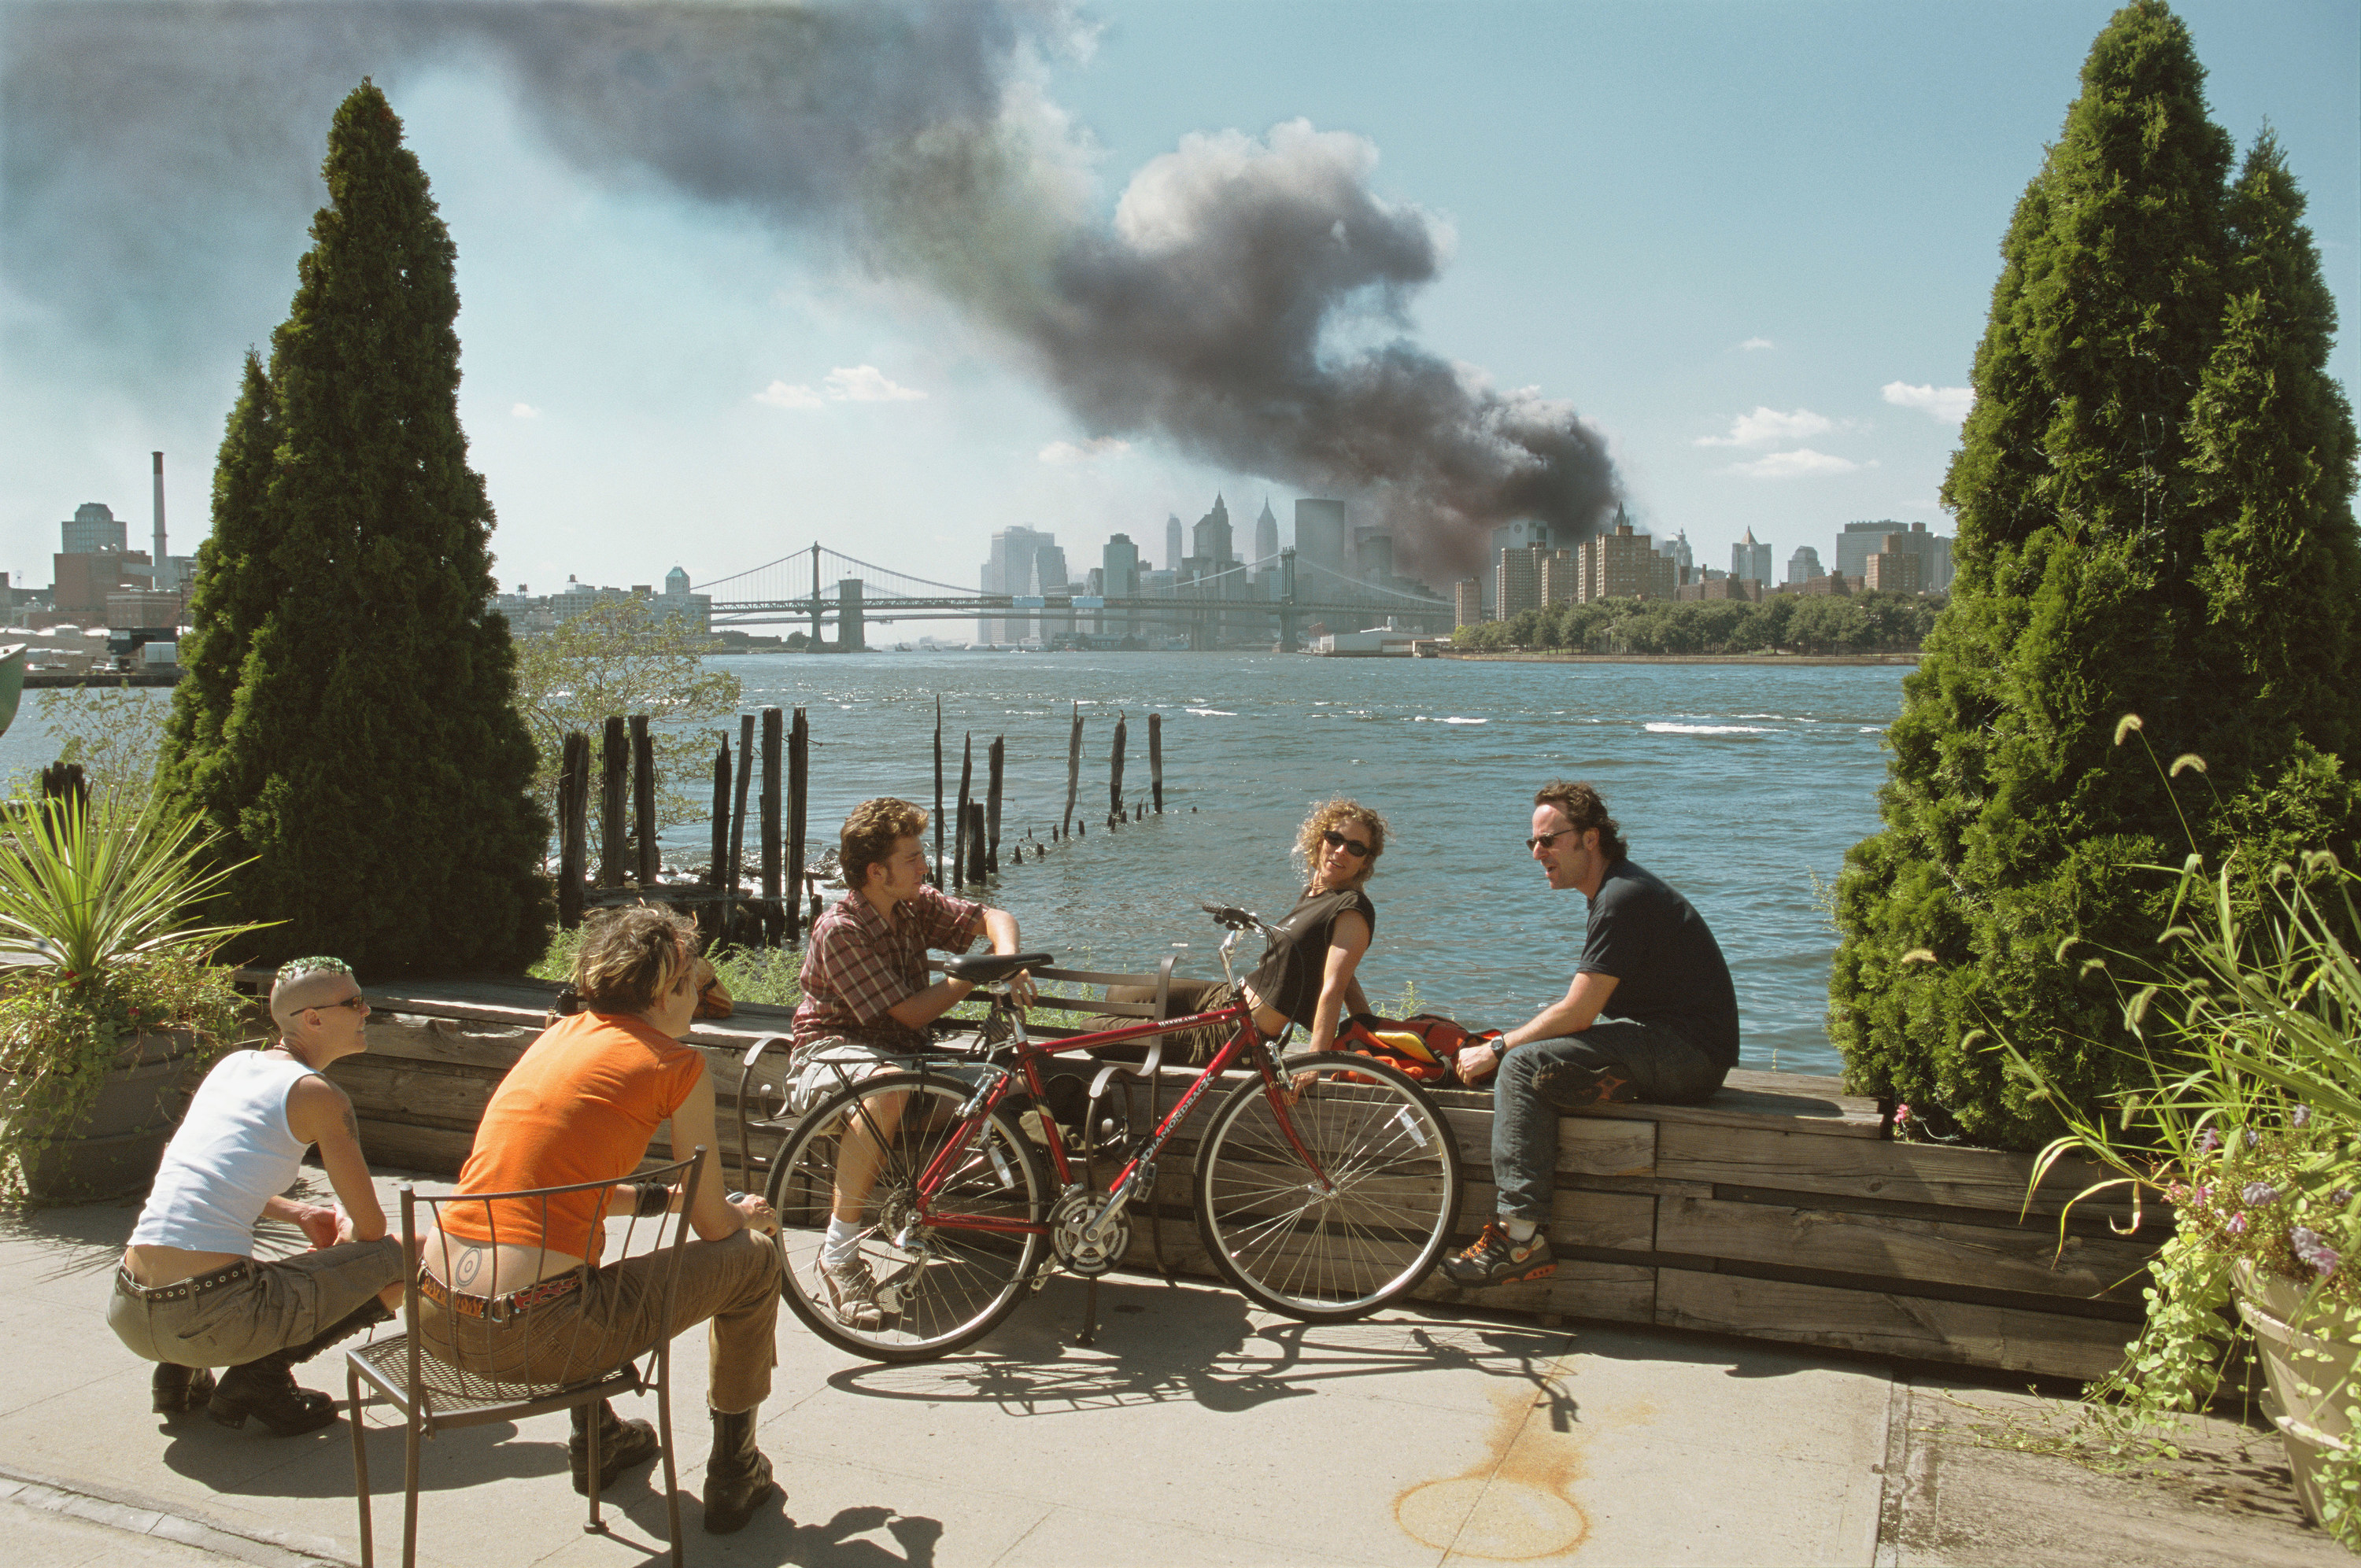 Young people relax during their lunch break along the East River while a huge plume of smoke rises from Lower Manhattan after the attack on the World Trade Center